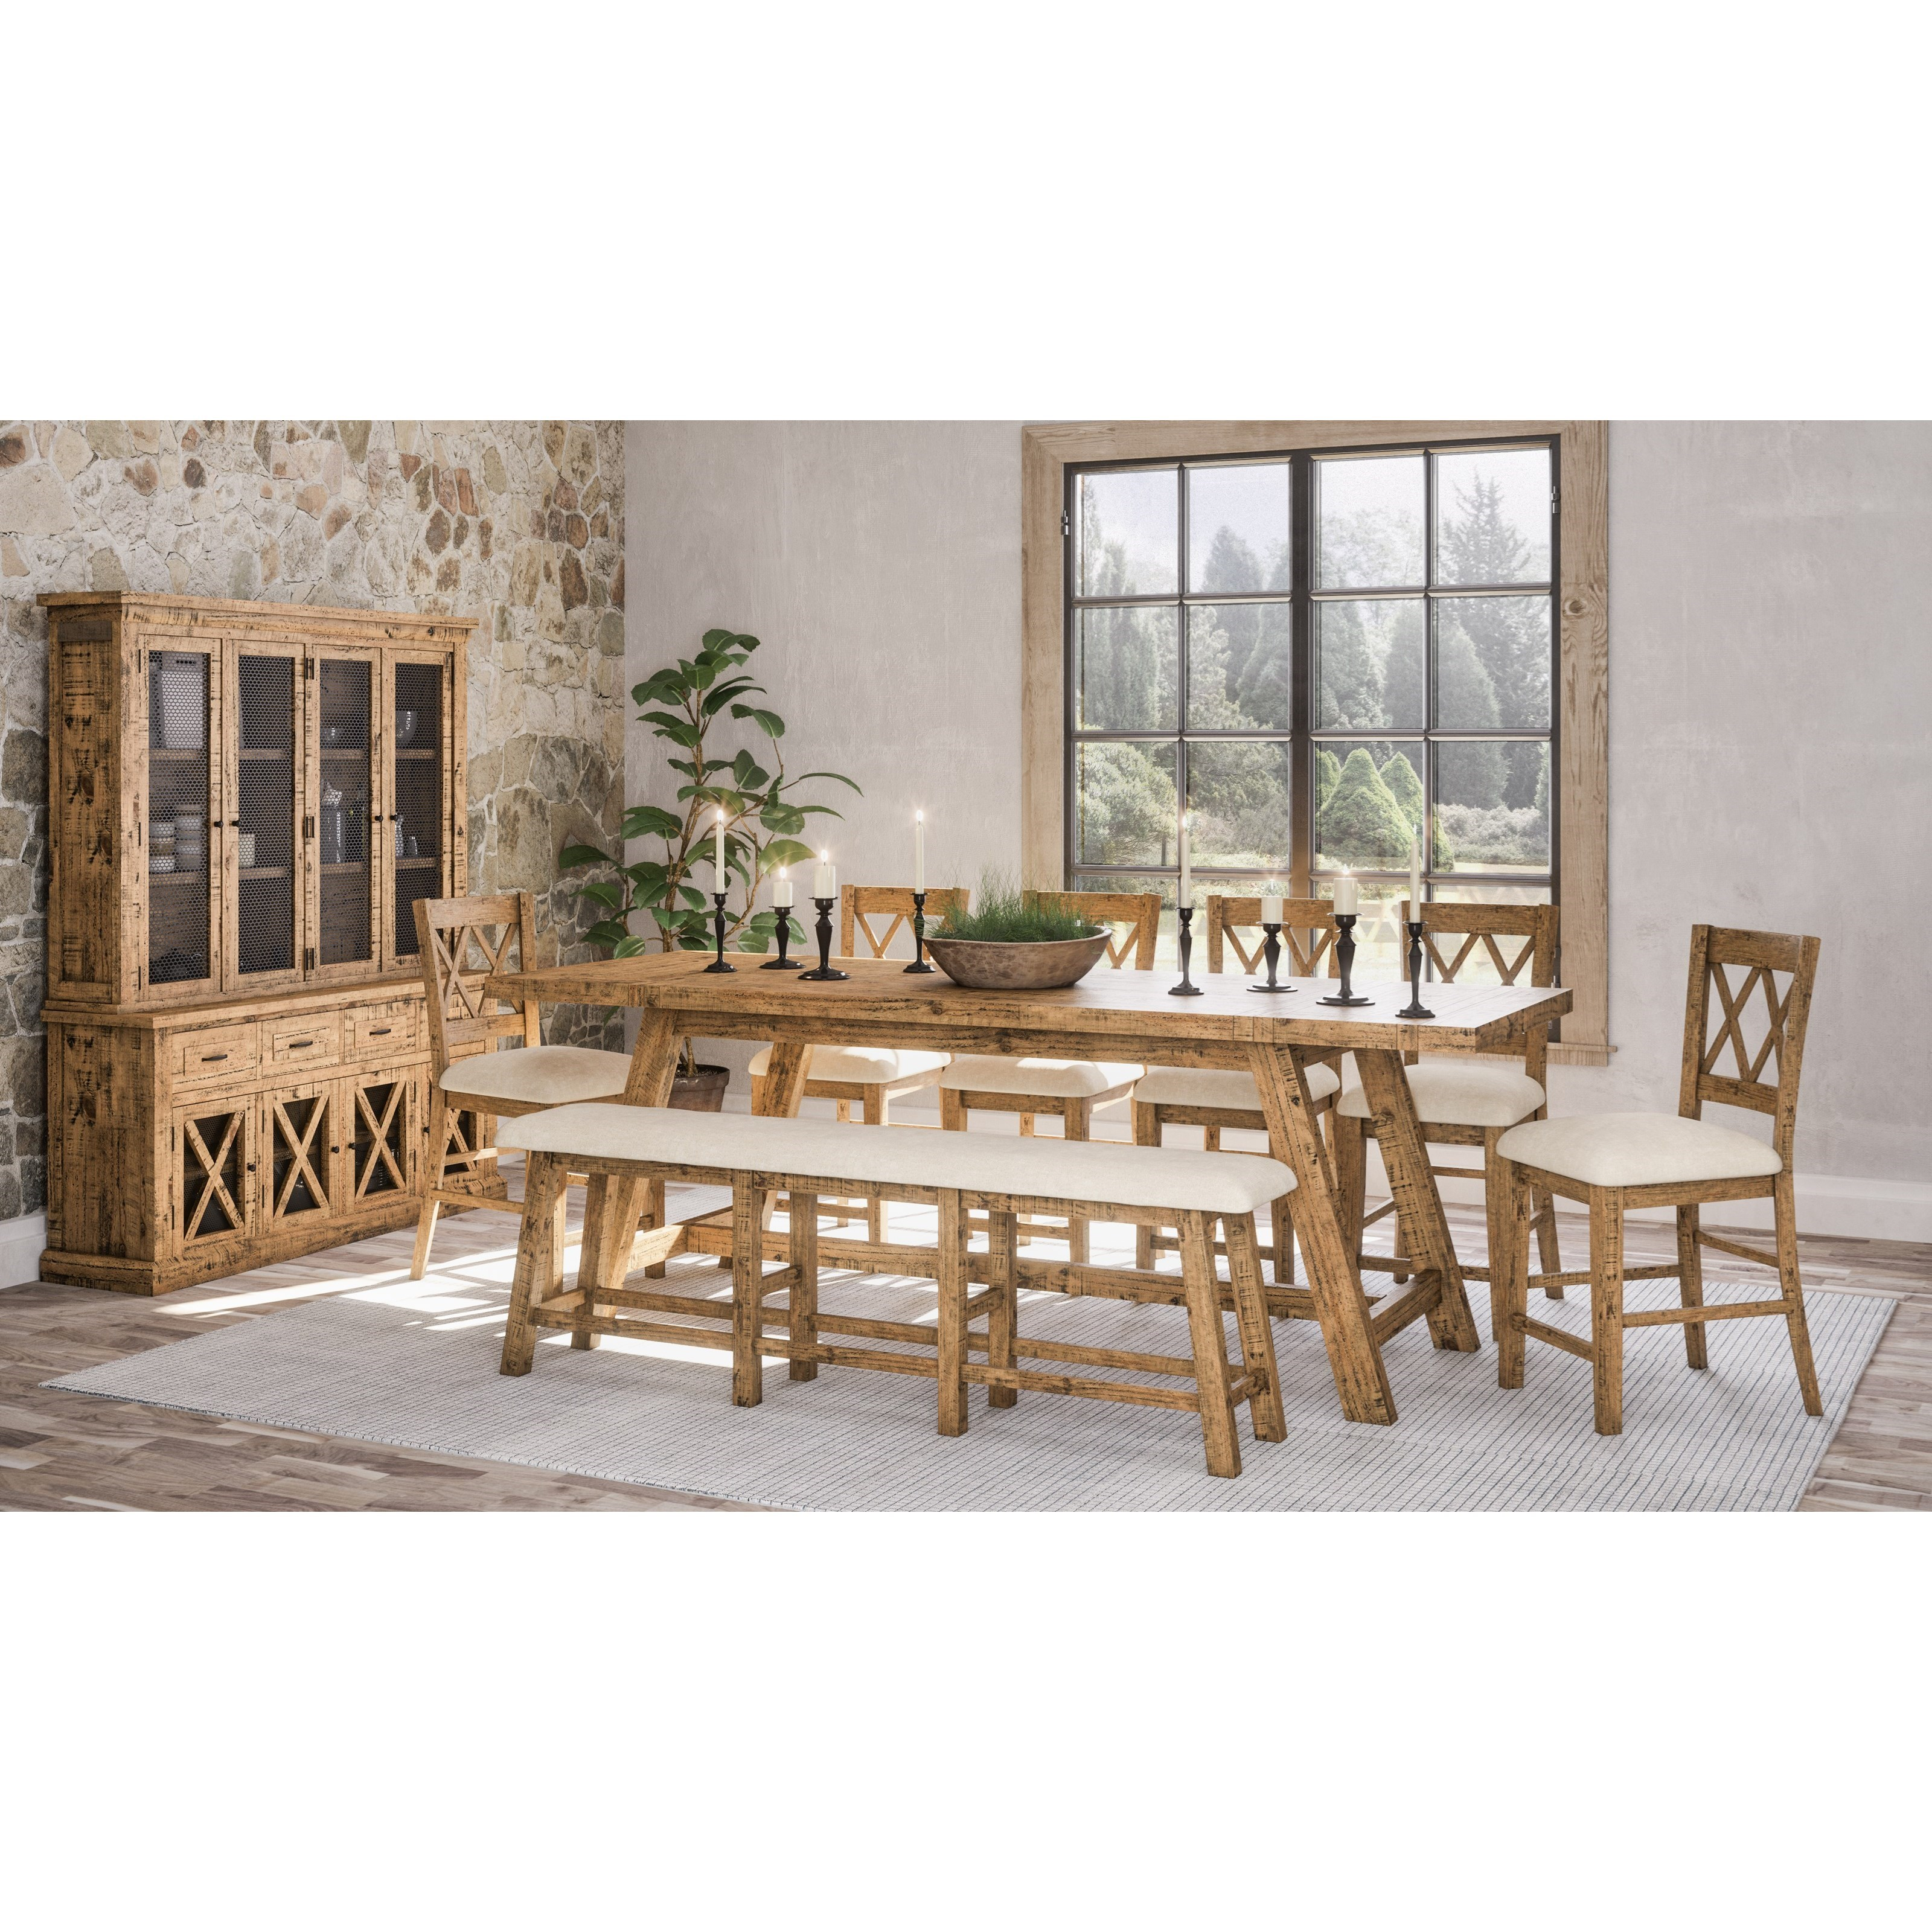 8-Piece Counter Height Table and Chair Set with Bench